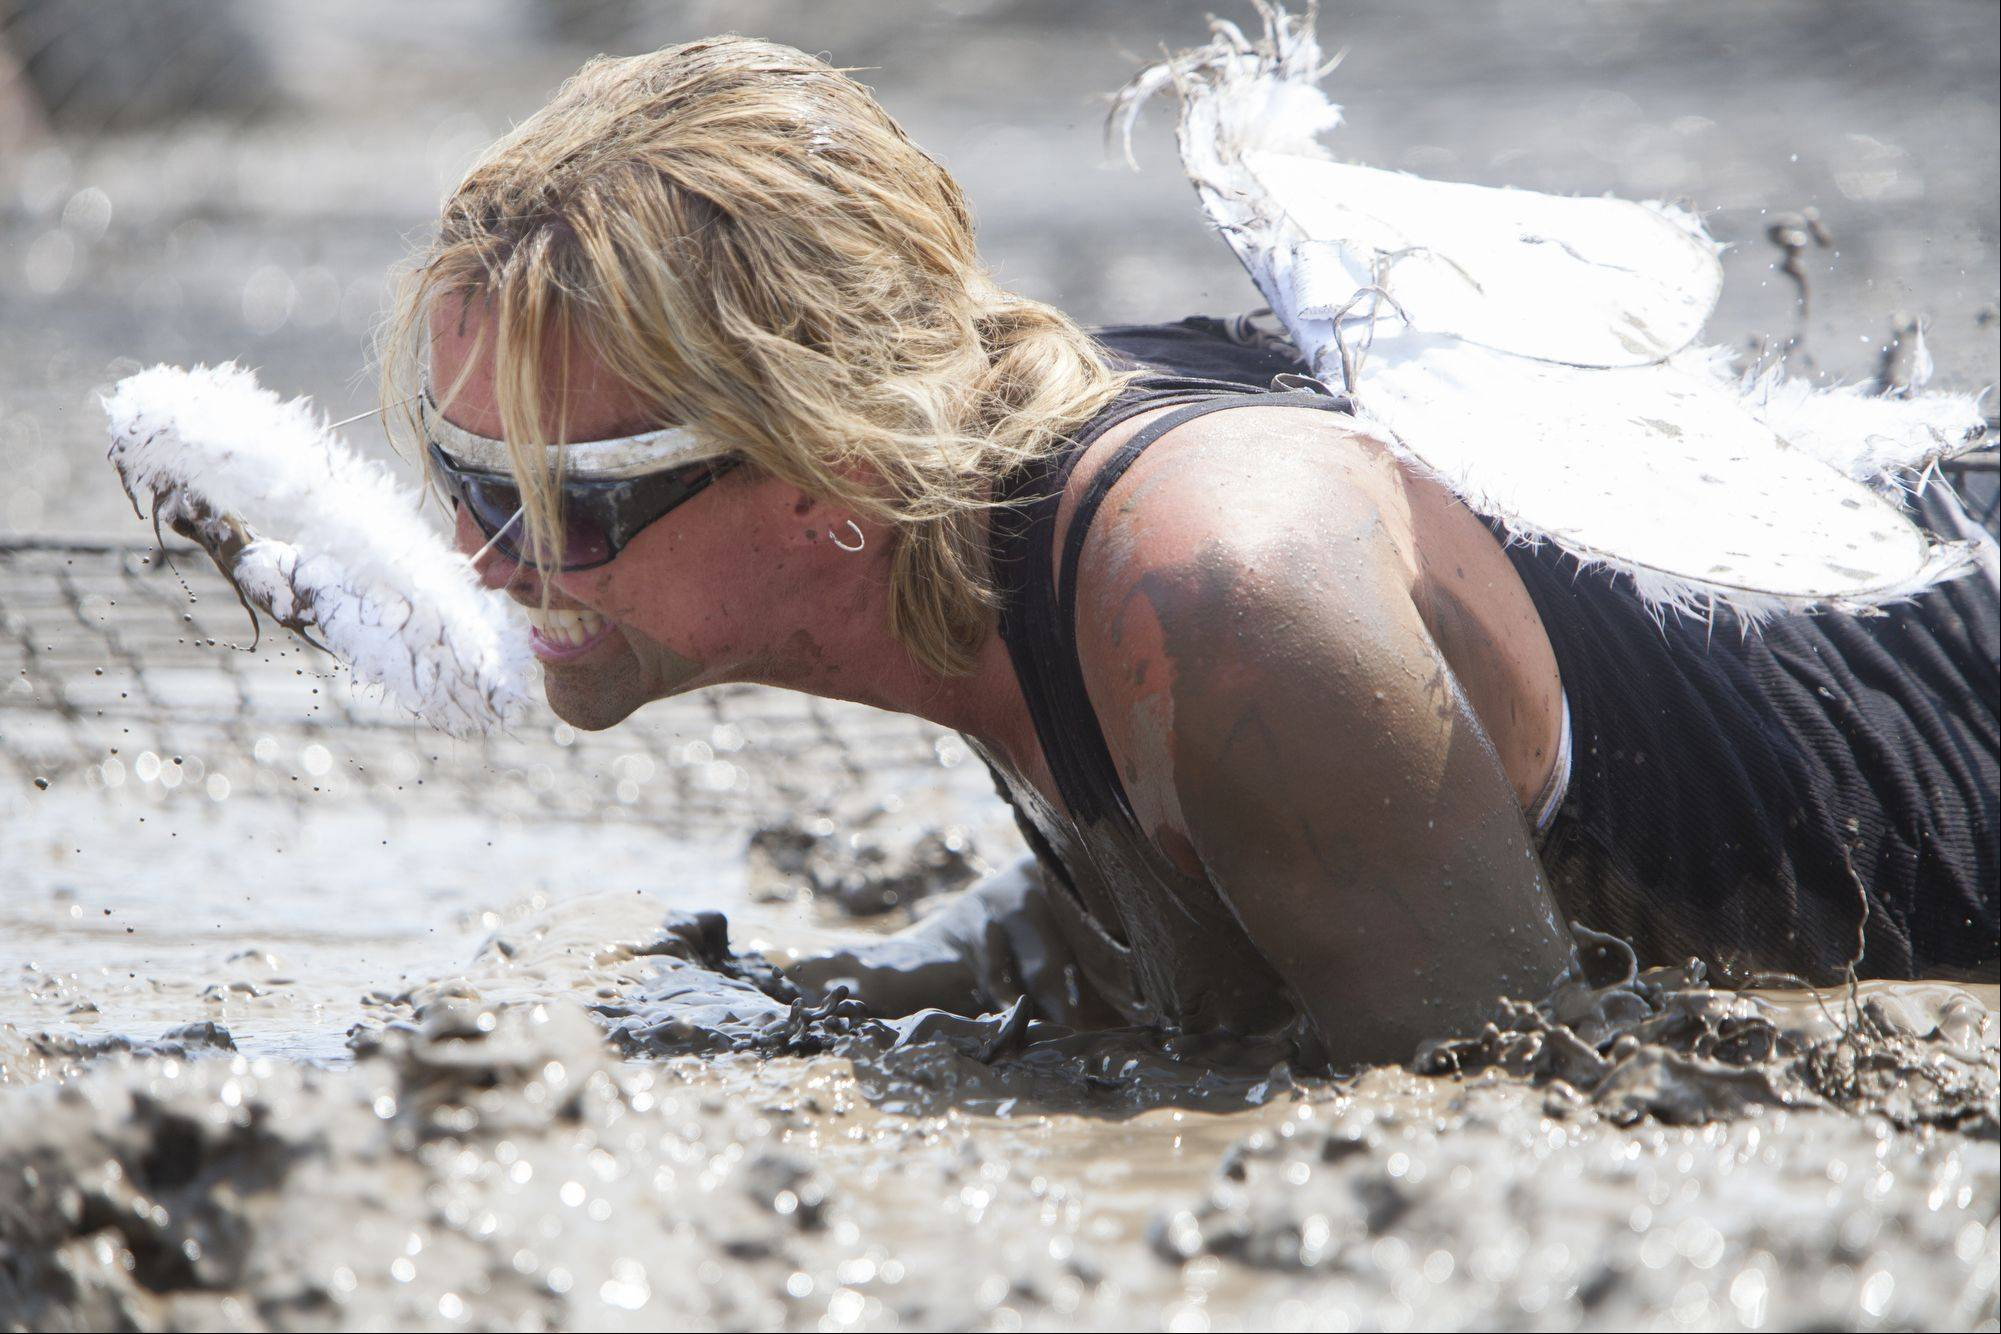 Anita Fuller of Antioch attempts pull herself out of the mud after army crawling through about 30 feet of mud during the Dirty Girl Mud Run Saturday at the Lake County Fair Grounds.